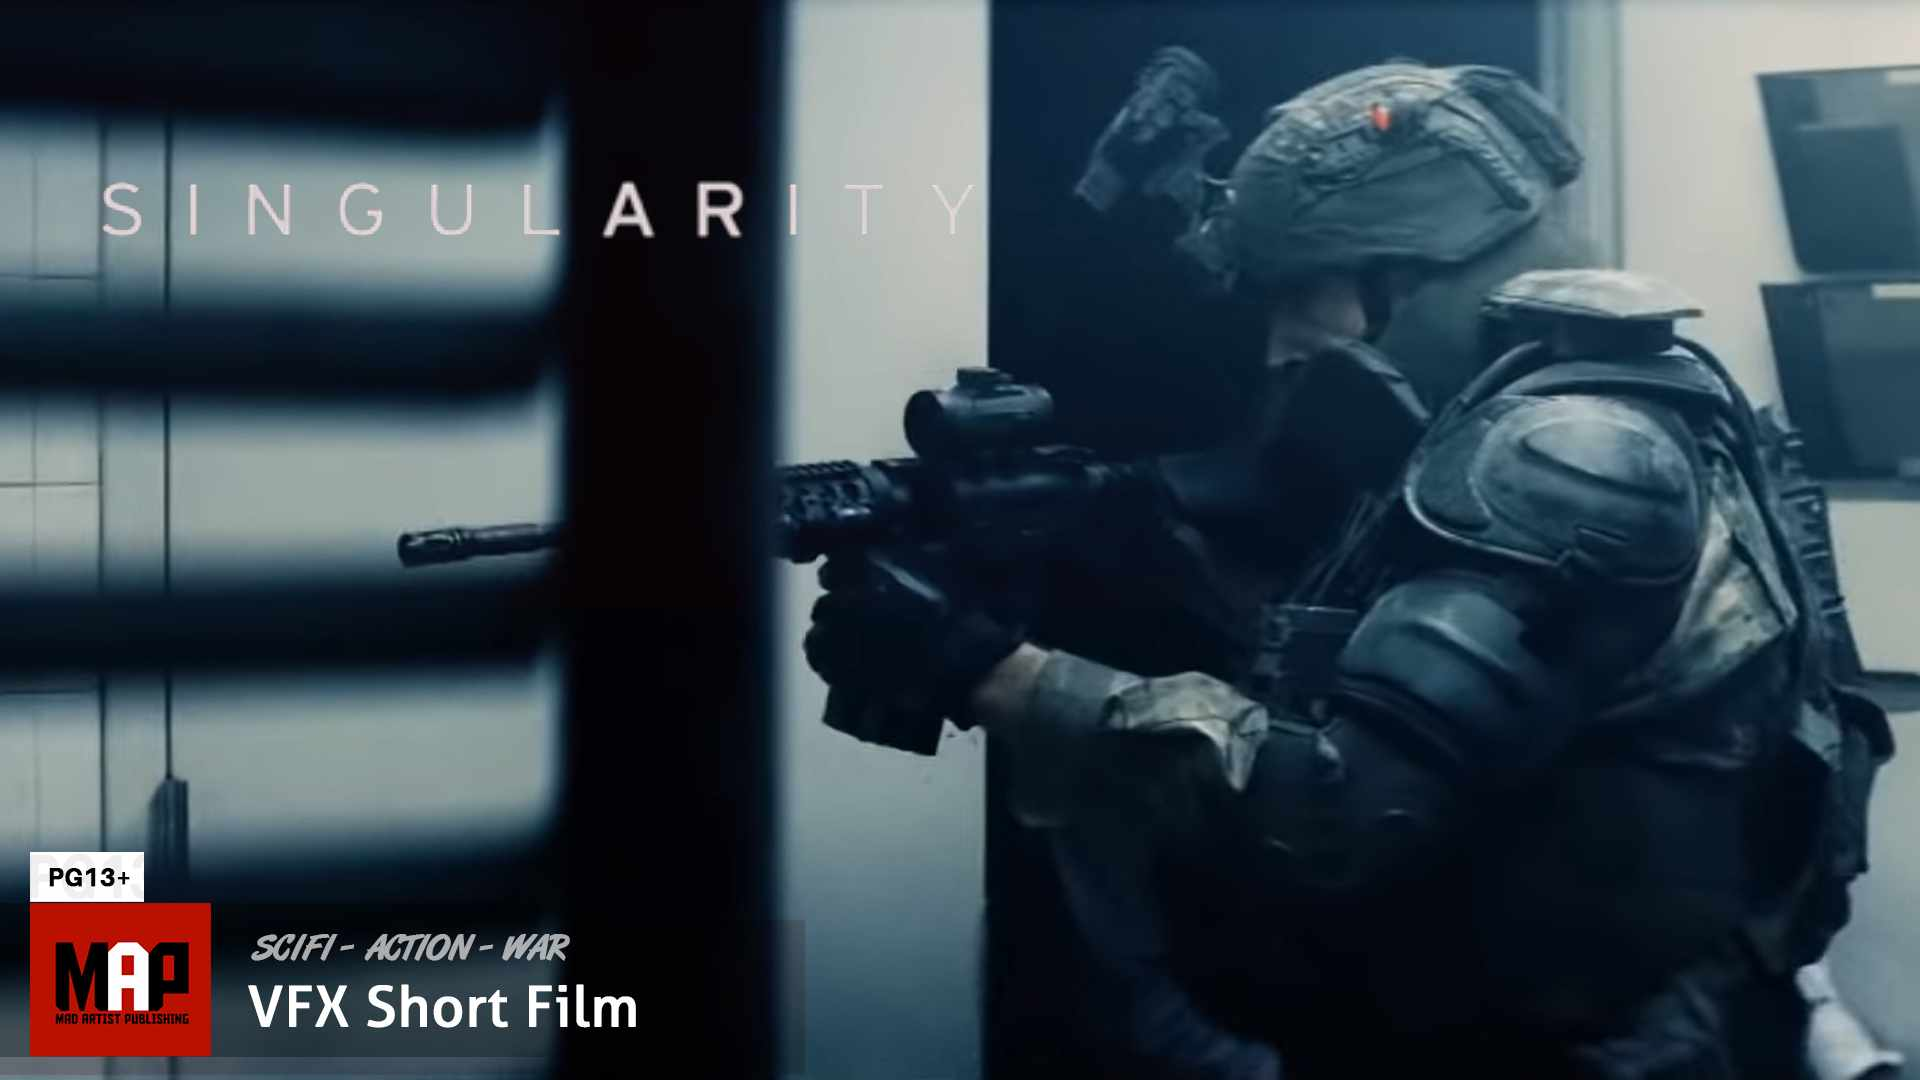 Sci-Fi Action War Film ** SINGULARITY ** VFX Short by The Bicycle Monarchy